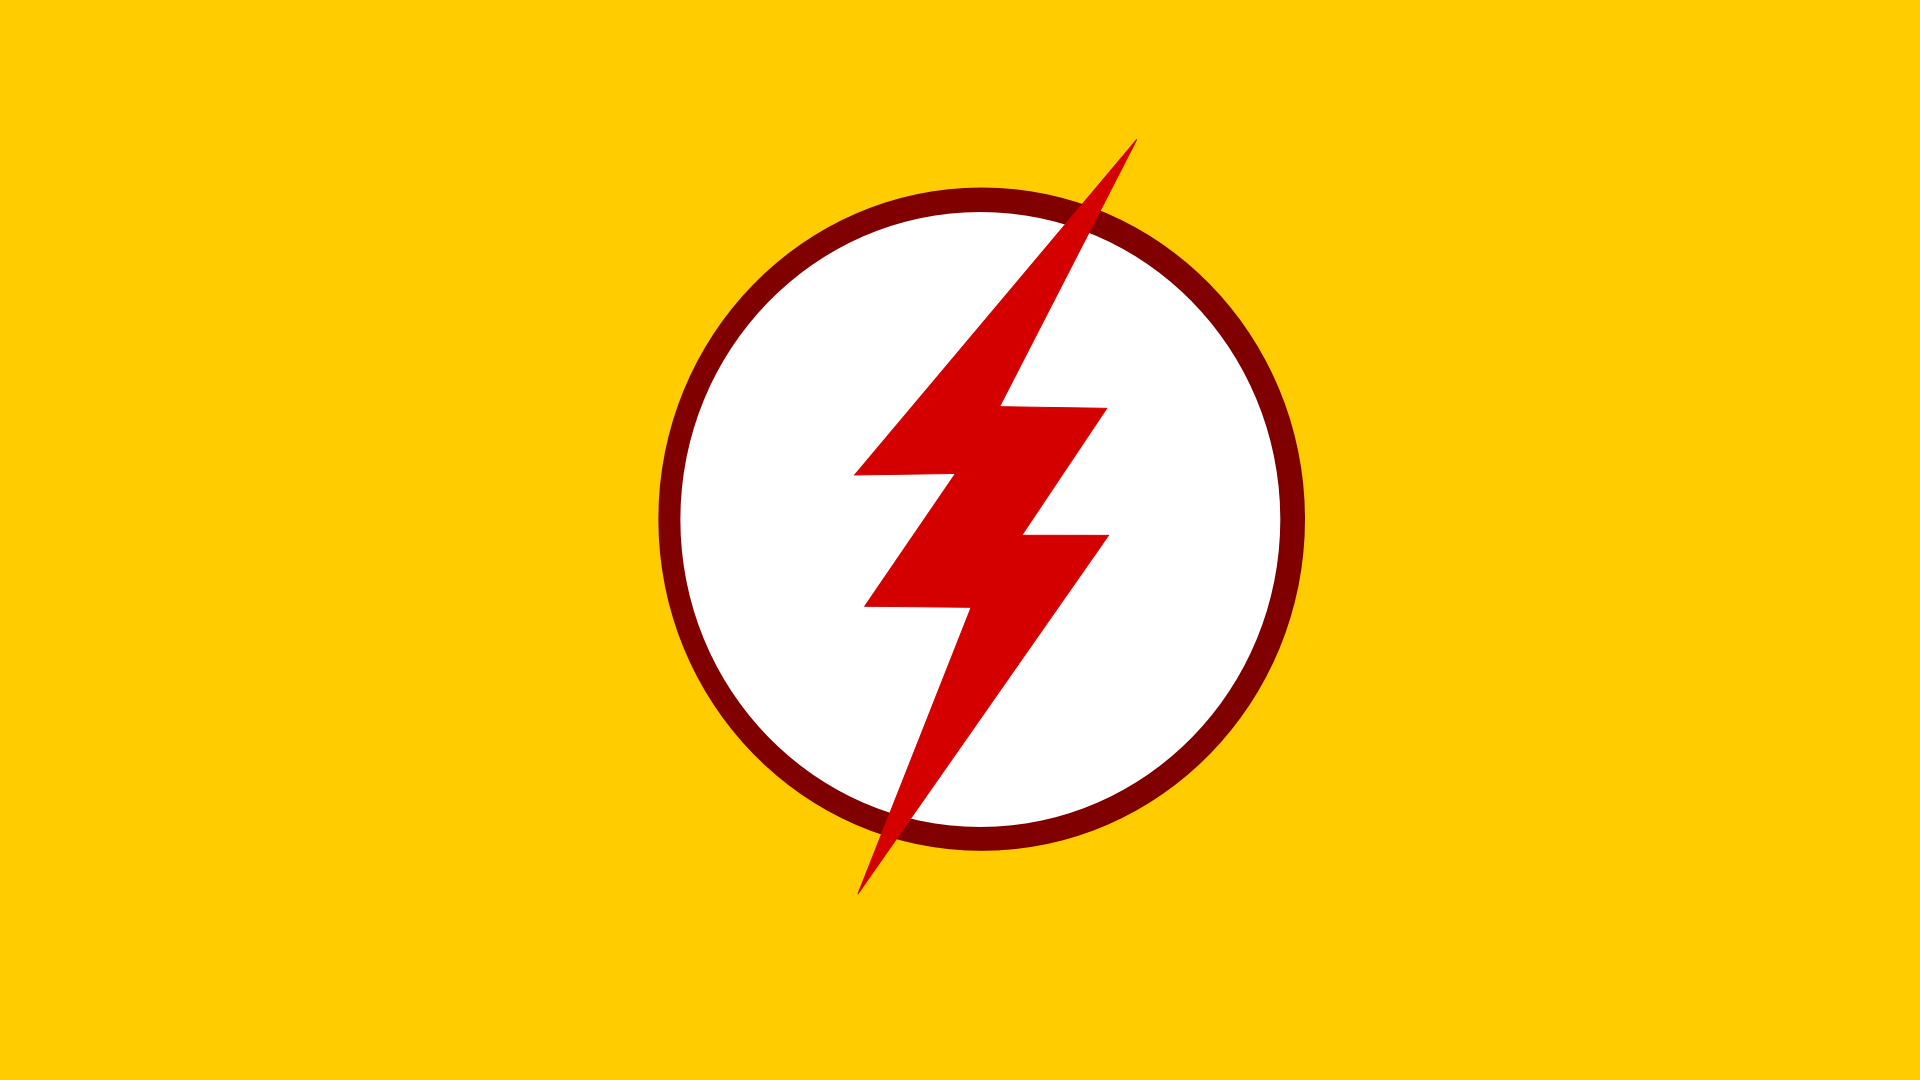 Kid Flash Wallpapers Group with 63 items